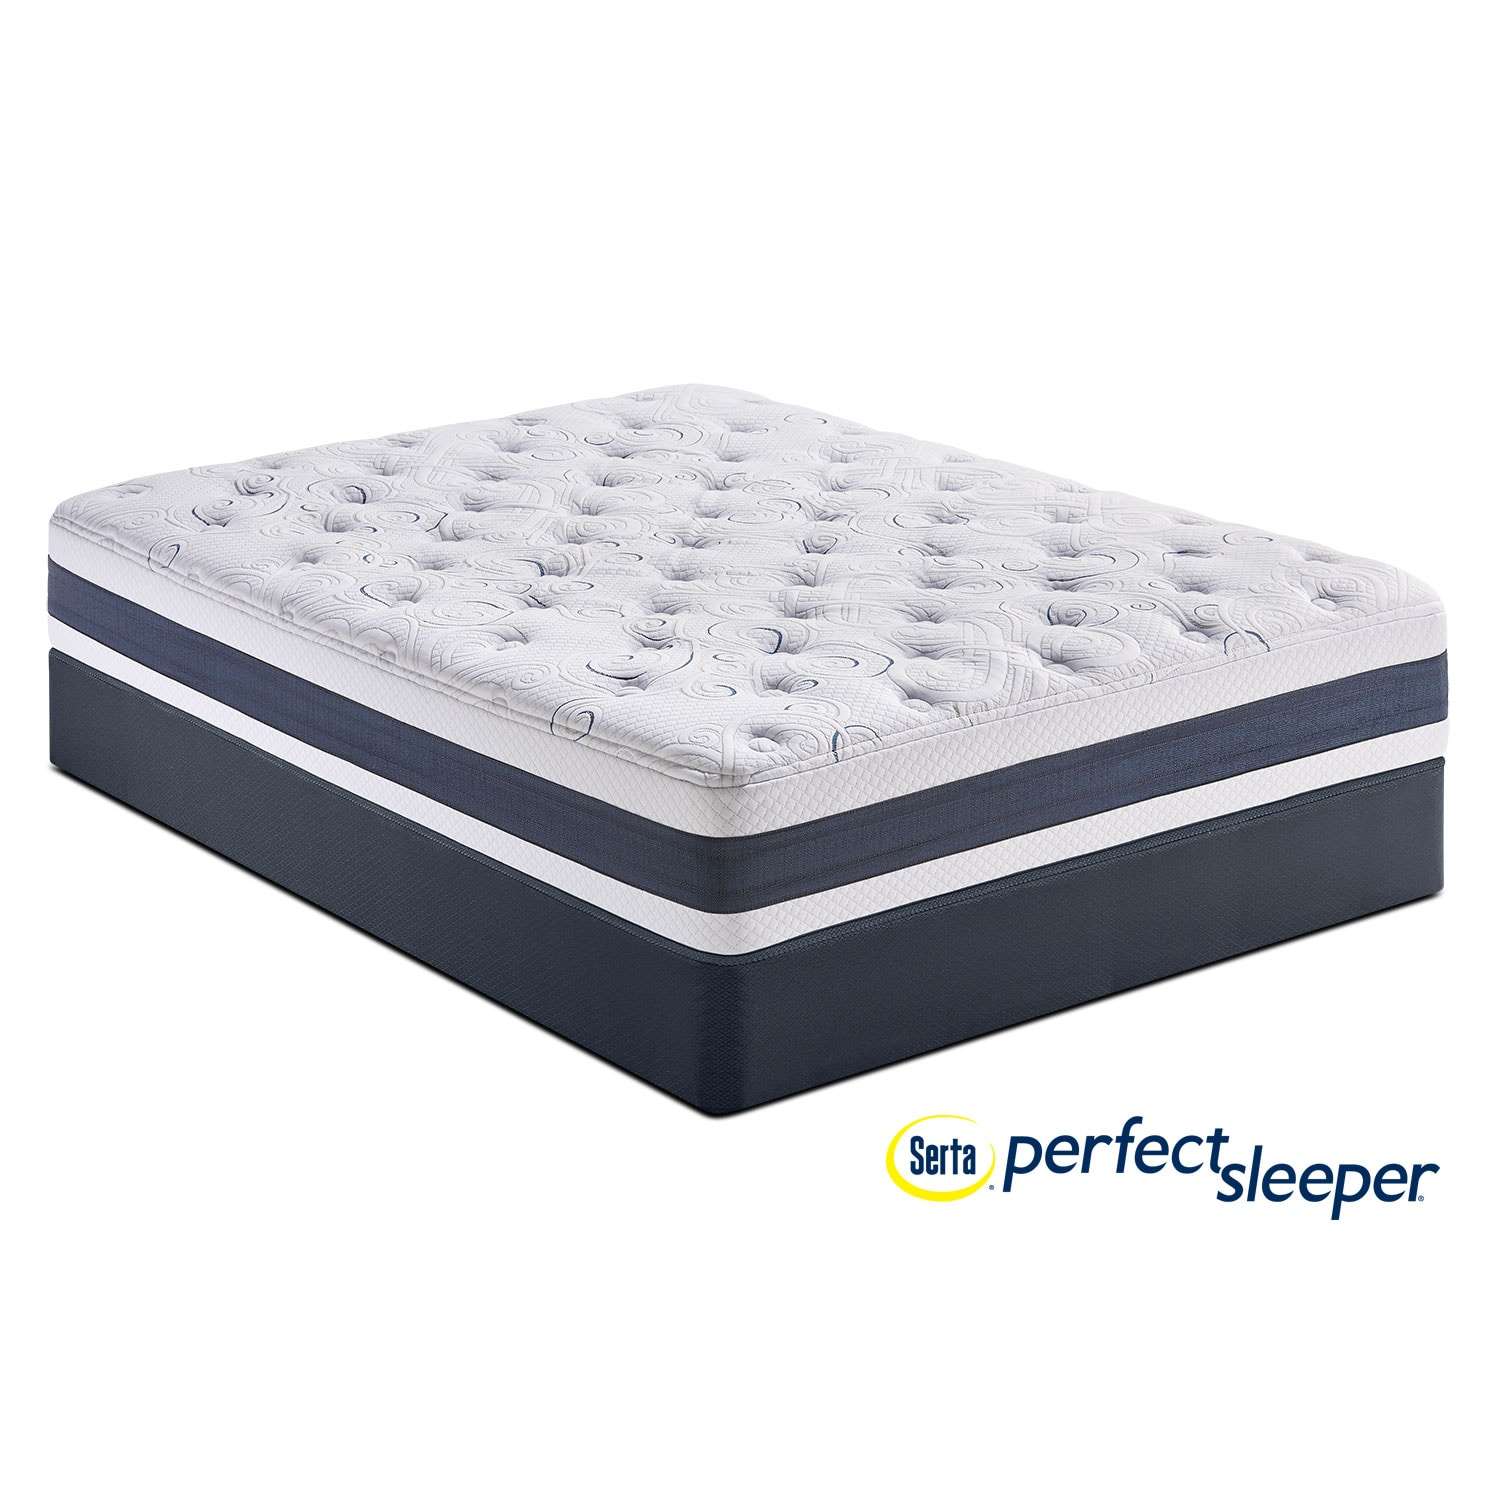 Twin mattress set therapedic back sense naples youth firm twin mattress set shadow falls plush Twin mattress sales